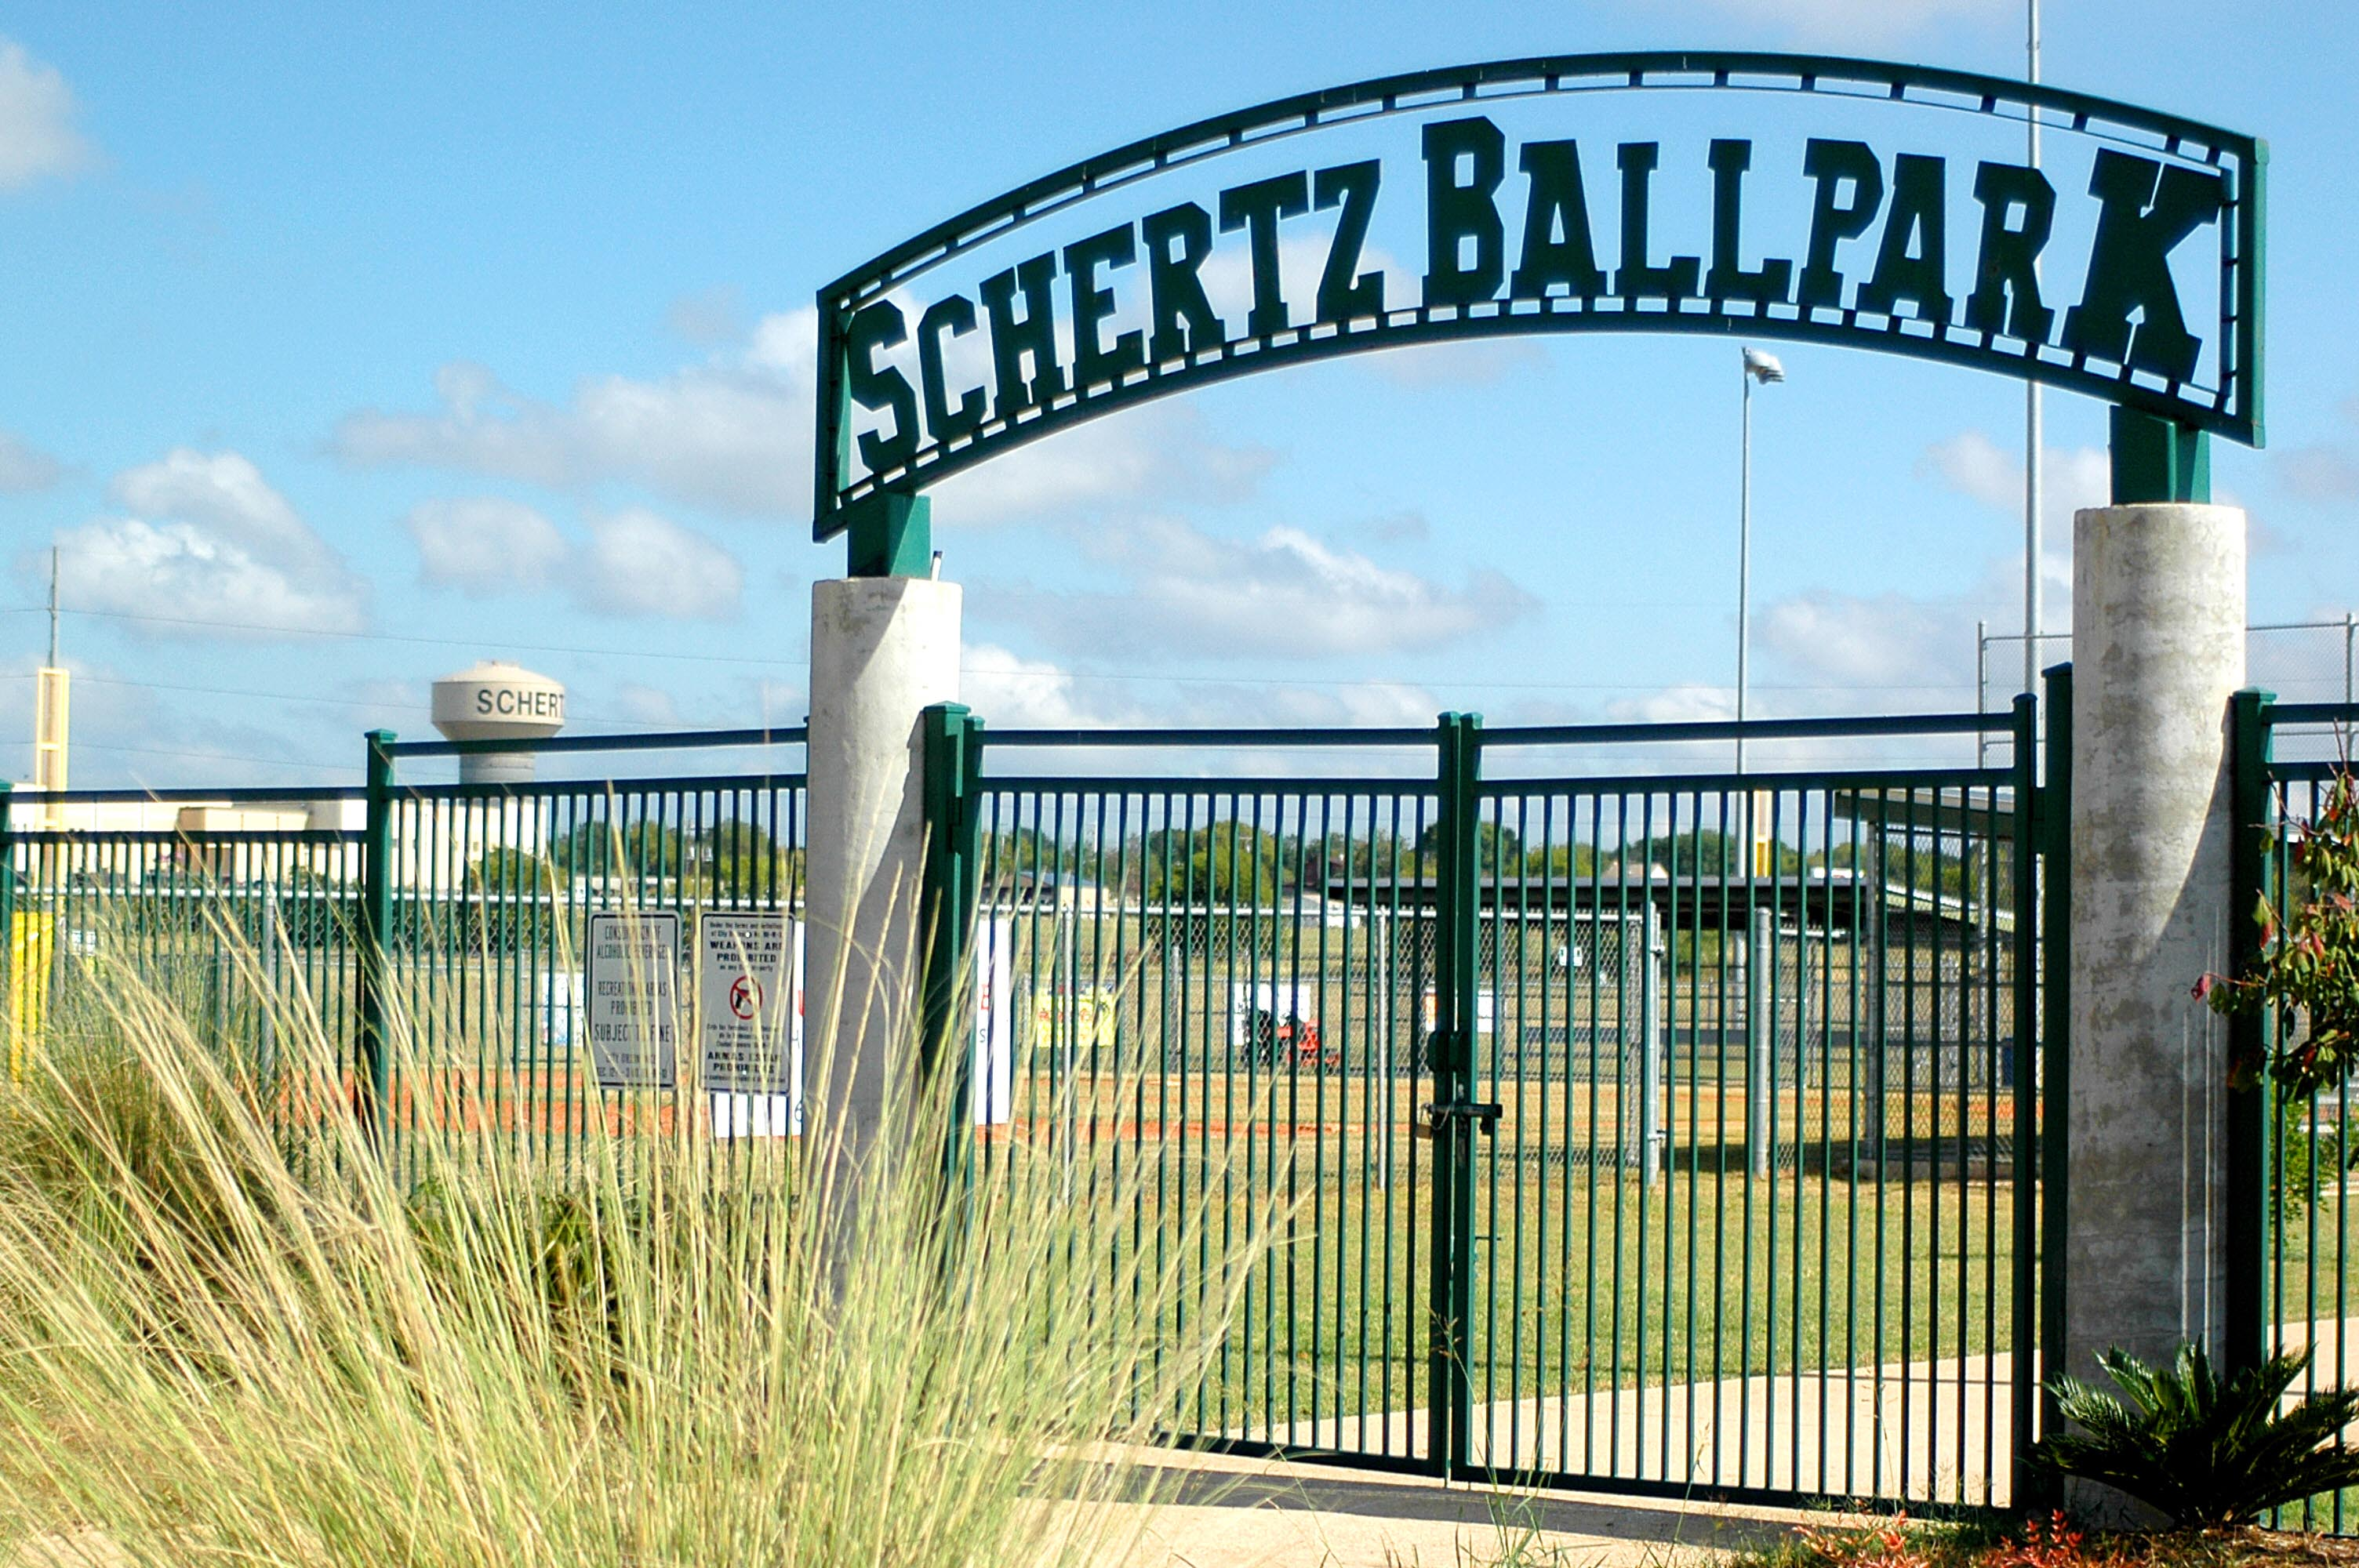 Schertz Baseball Field